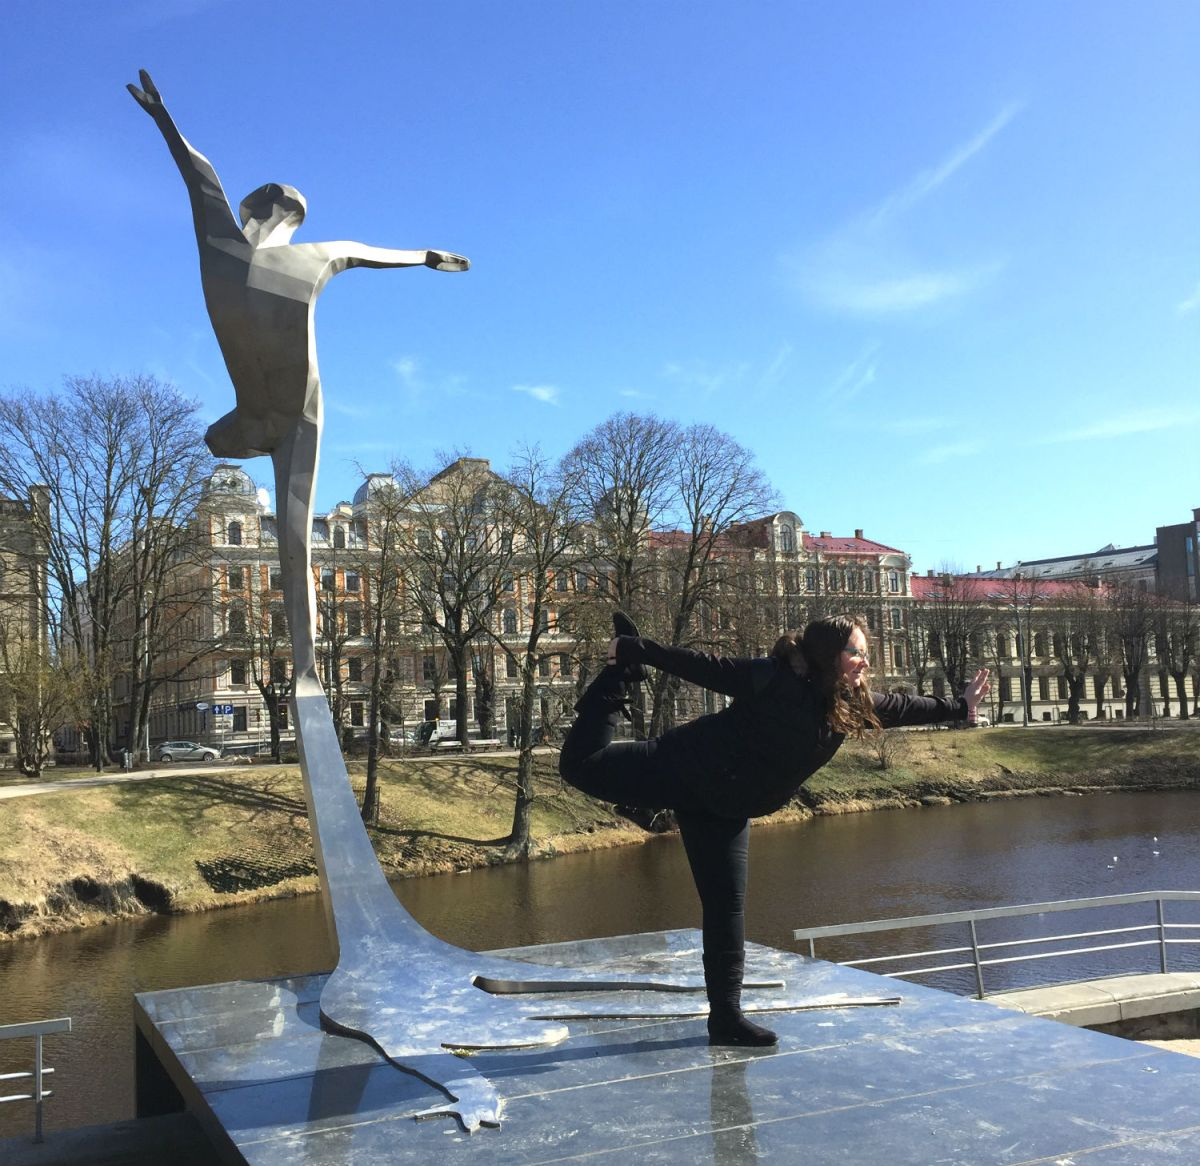 A Little Bit On Latvia: Photos from Riga